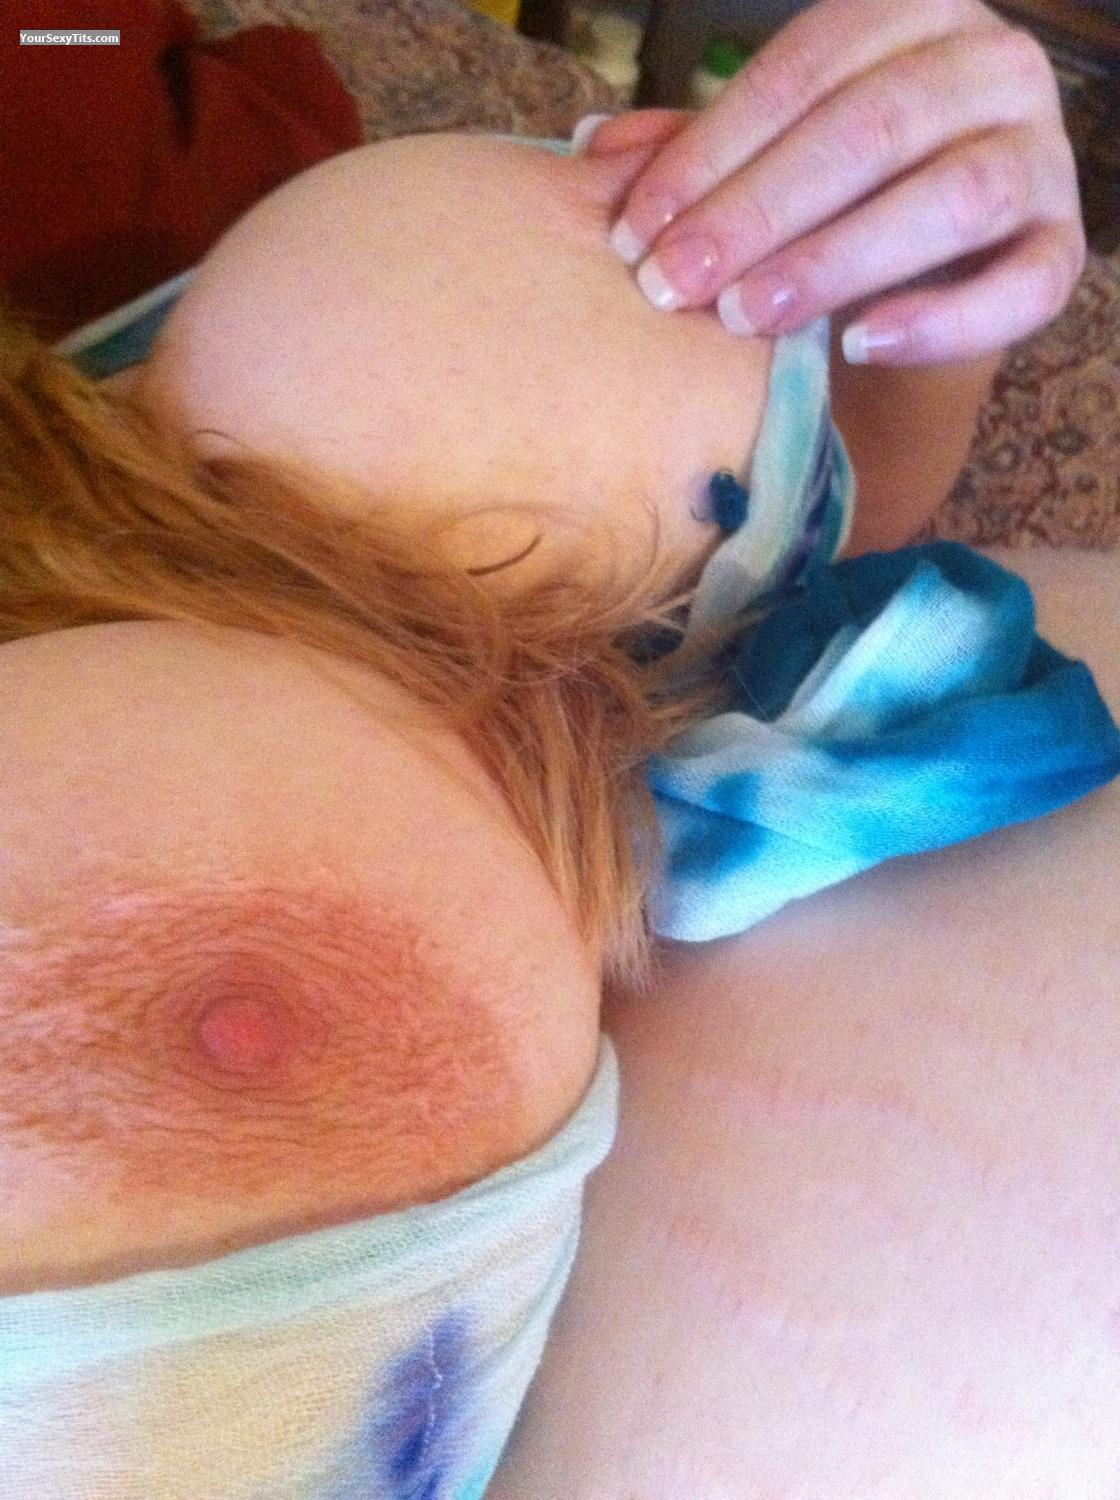 Tit Flash: My Very Big Tits By IPhone (Selfie) - Up & Out from United States